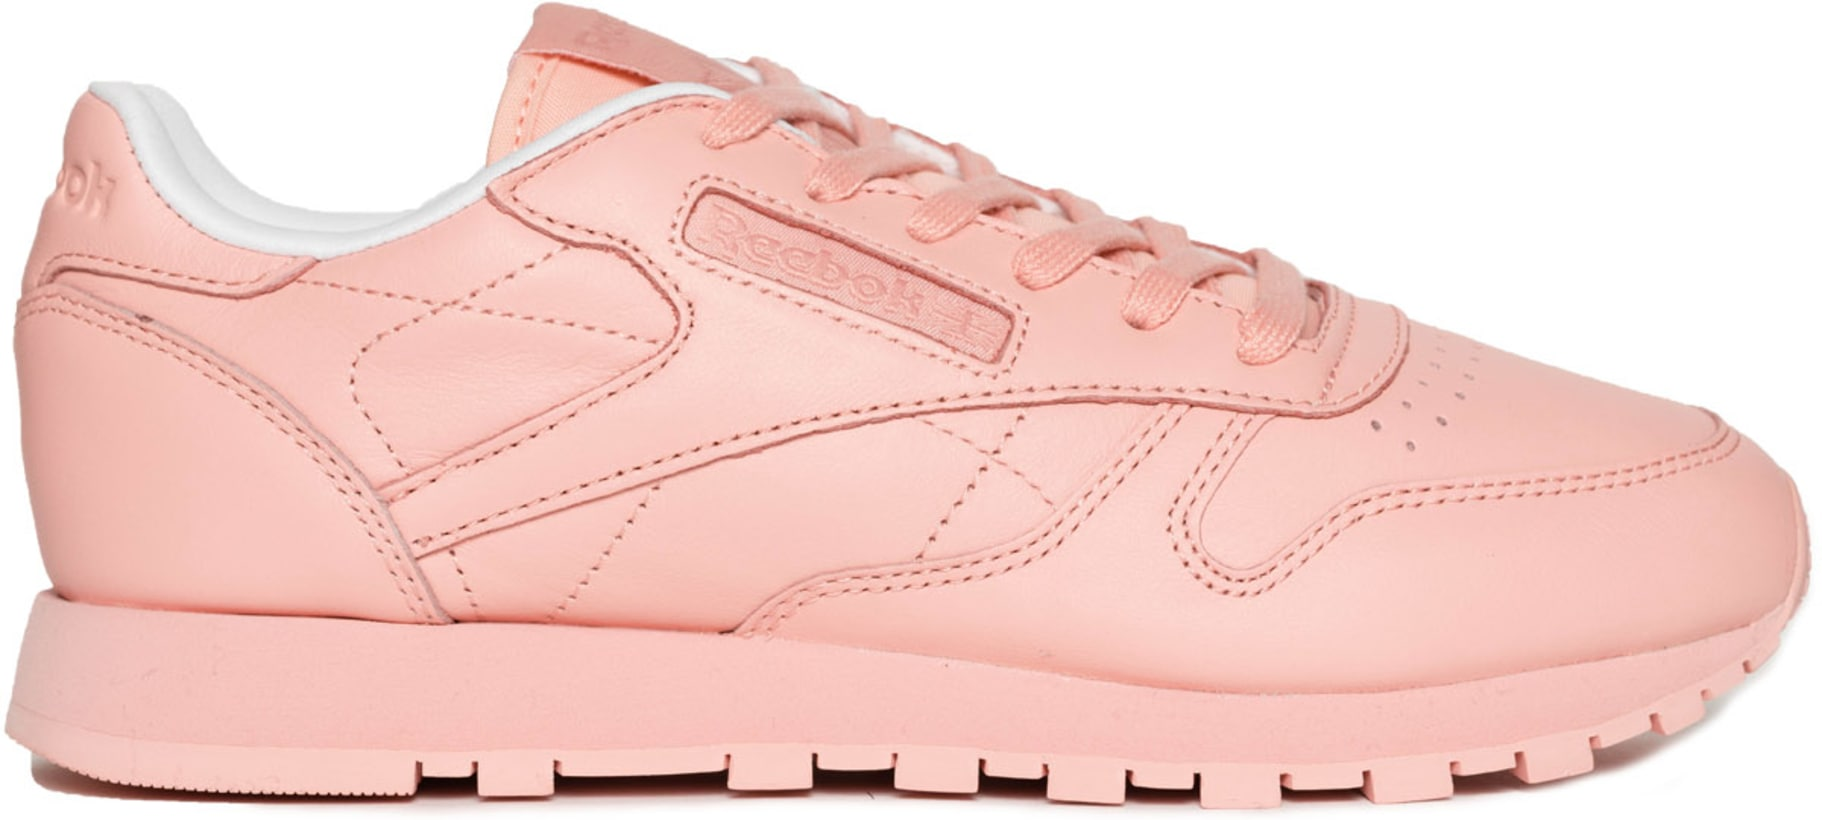 new style 4d4fc b5f2d Reebok - Classic Leather Pastels - Patina Pink/White